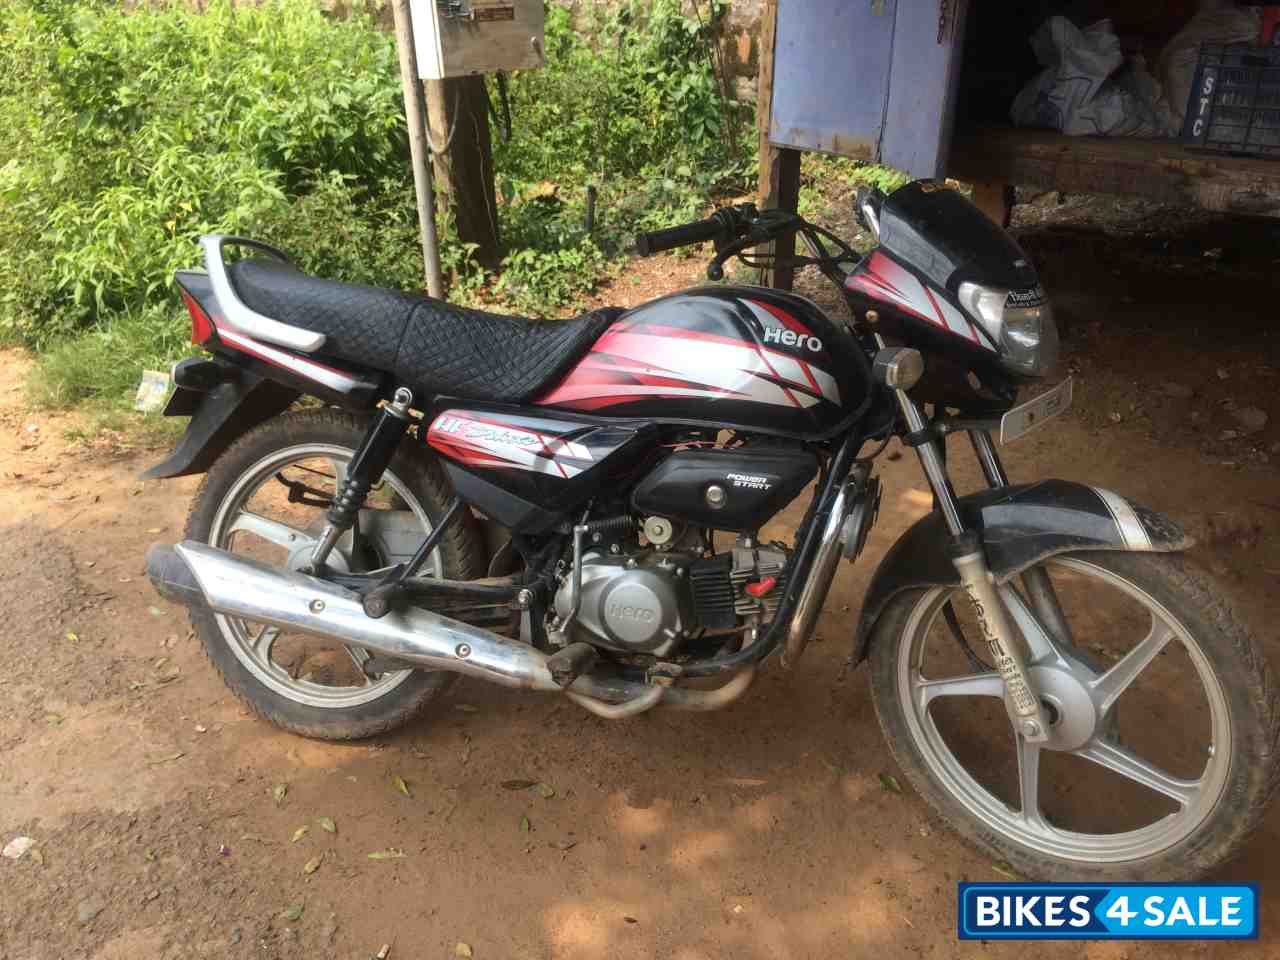 Used 2017 Model Hero Hf Deluxe I3s For Sale In Mahasamund Id 242030 Black Red Colour Bikes4sale